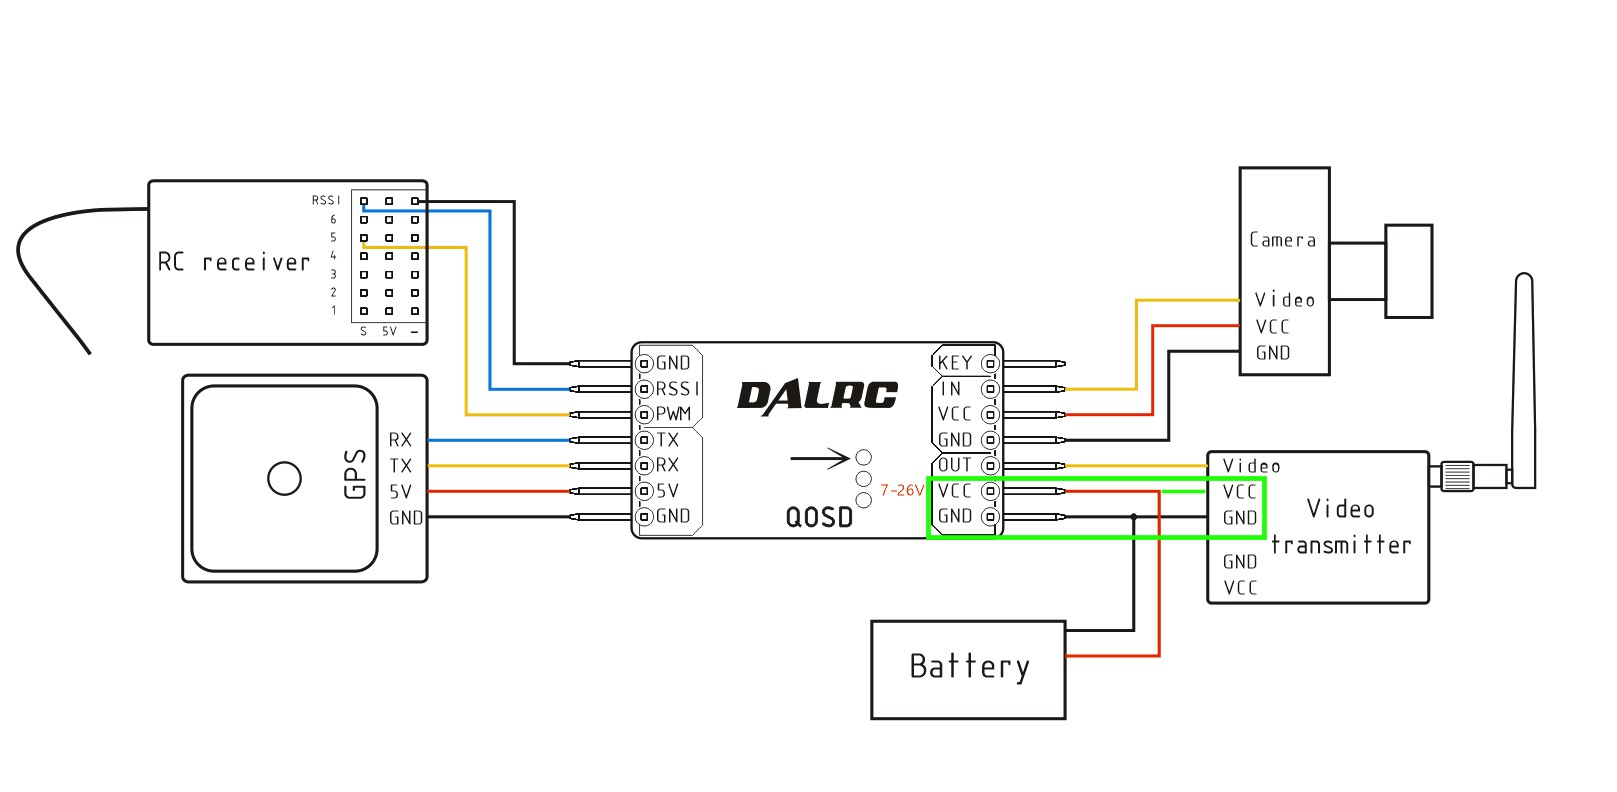 Fpv Gauges Diagram Trusted Wiring Fenner Fluid Power Diagrams Amd Osd Online Schematic U2022